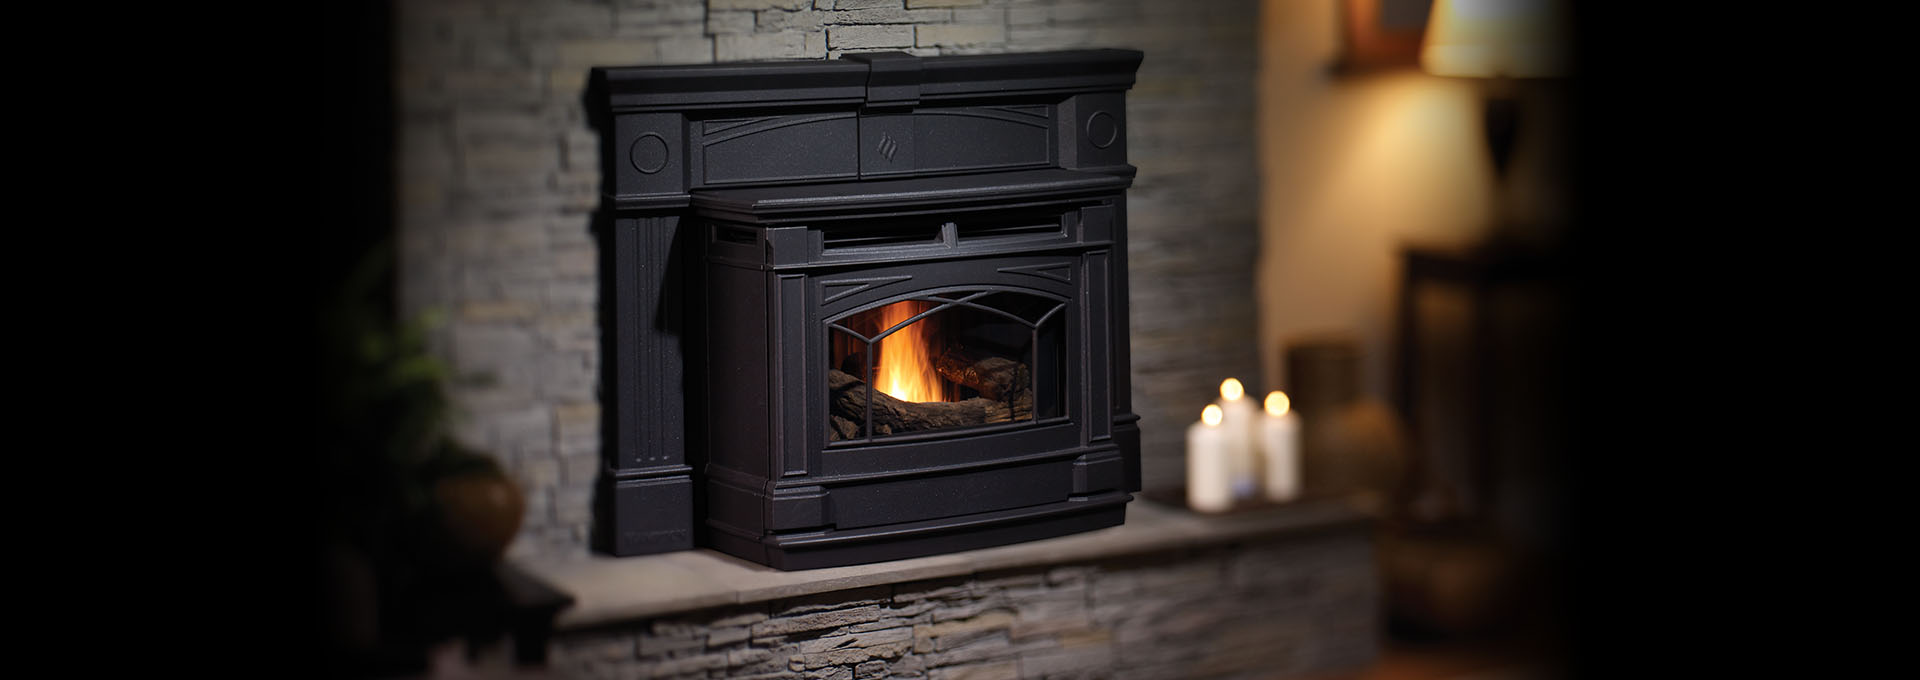 Hot Stuff Hearth Home Inserts Improve Fuel Efficiency And Heat Output